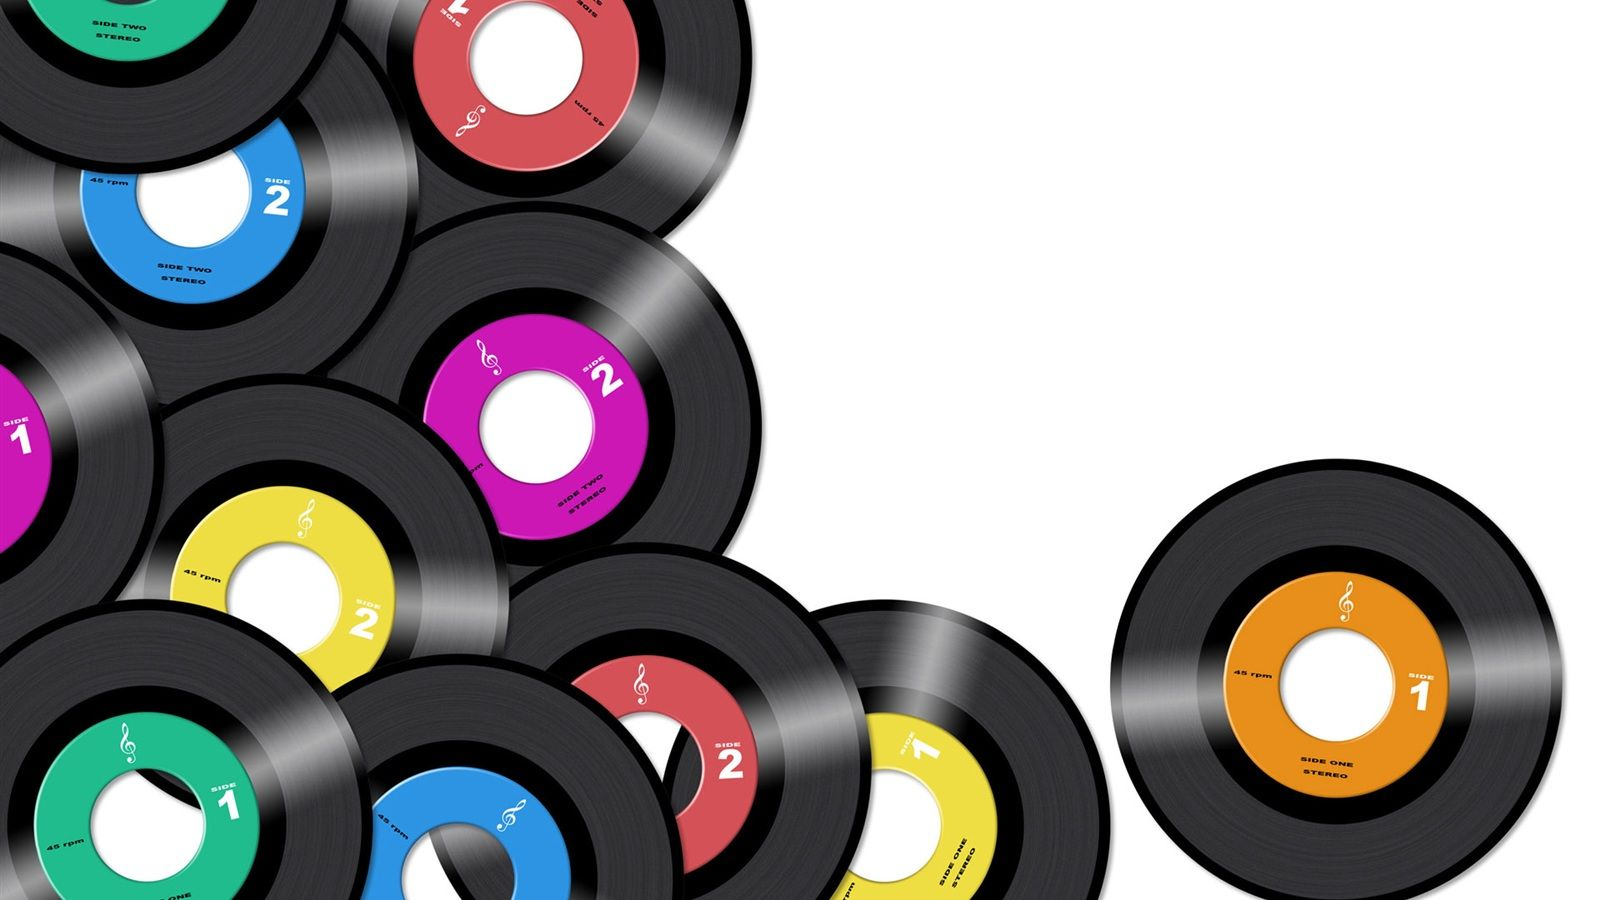 1600x900 Wallpaper Colorful Music CD 1920x1200 HD Picture, Image